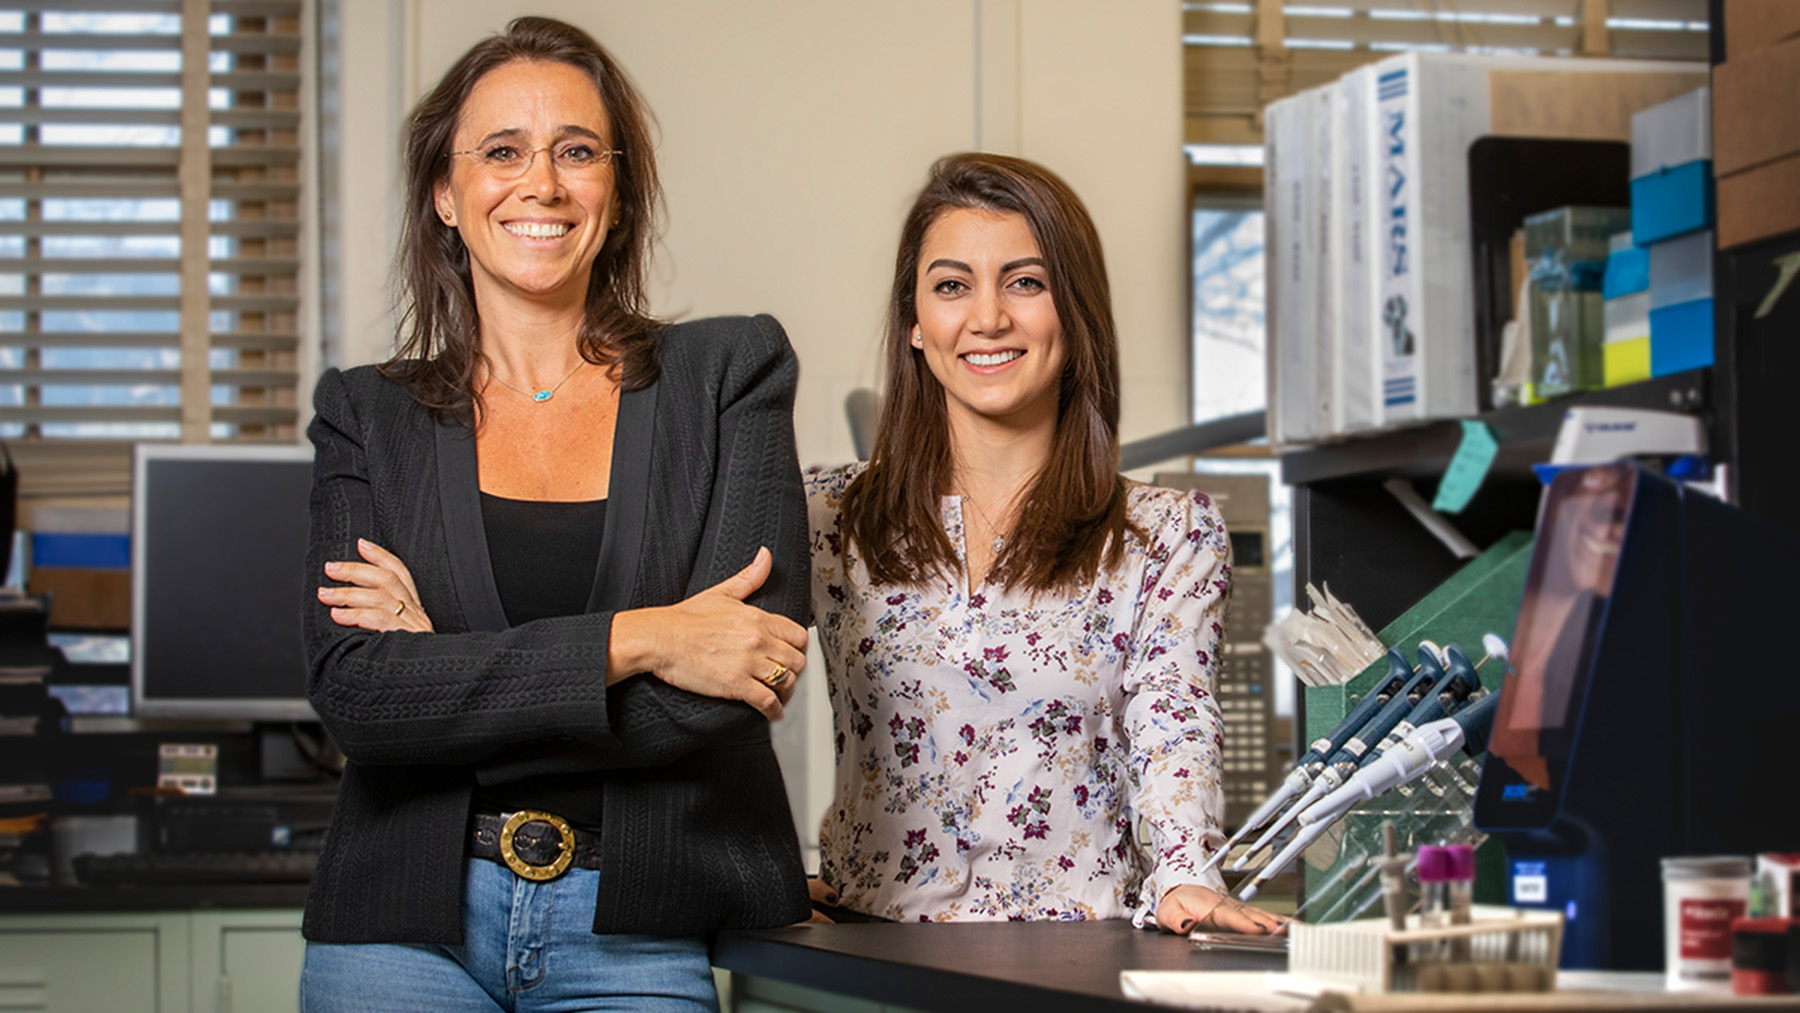 professor of food science and human nutrition M. Yanina Pepino on the left side